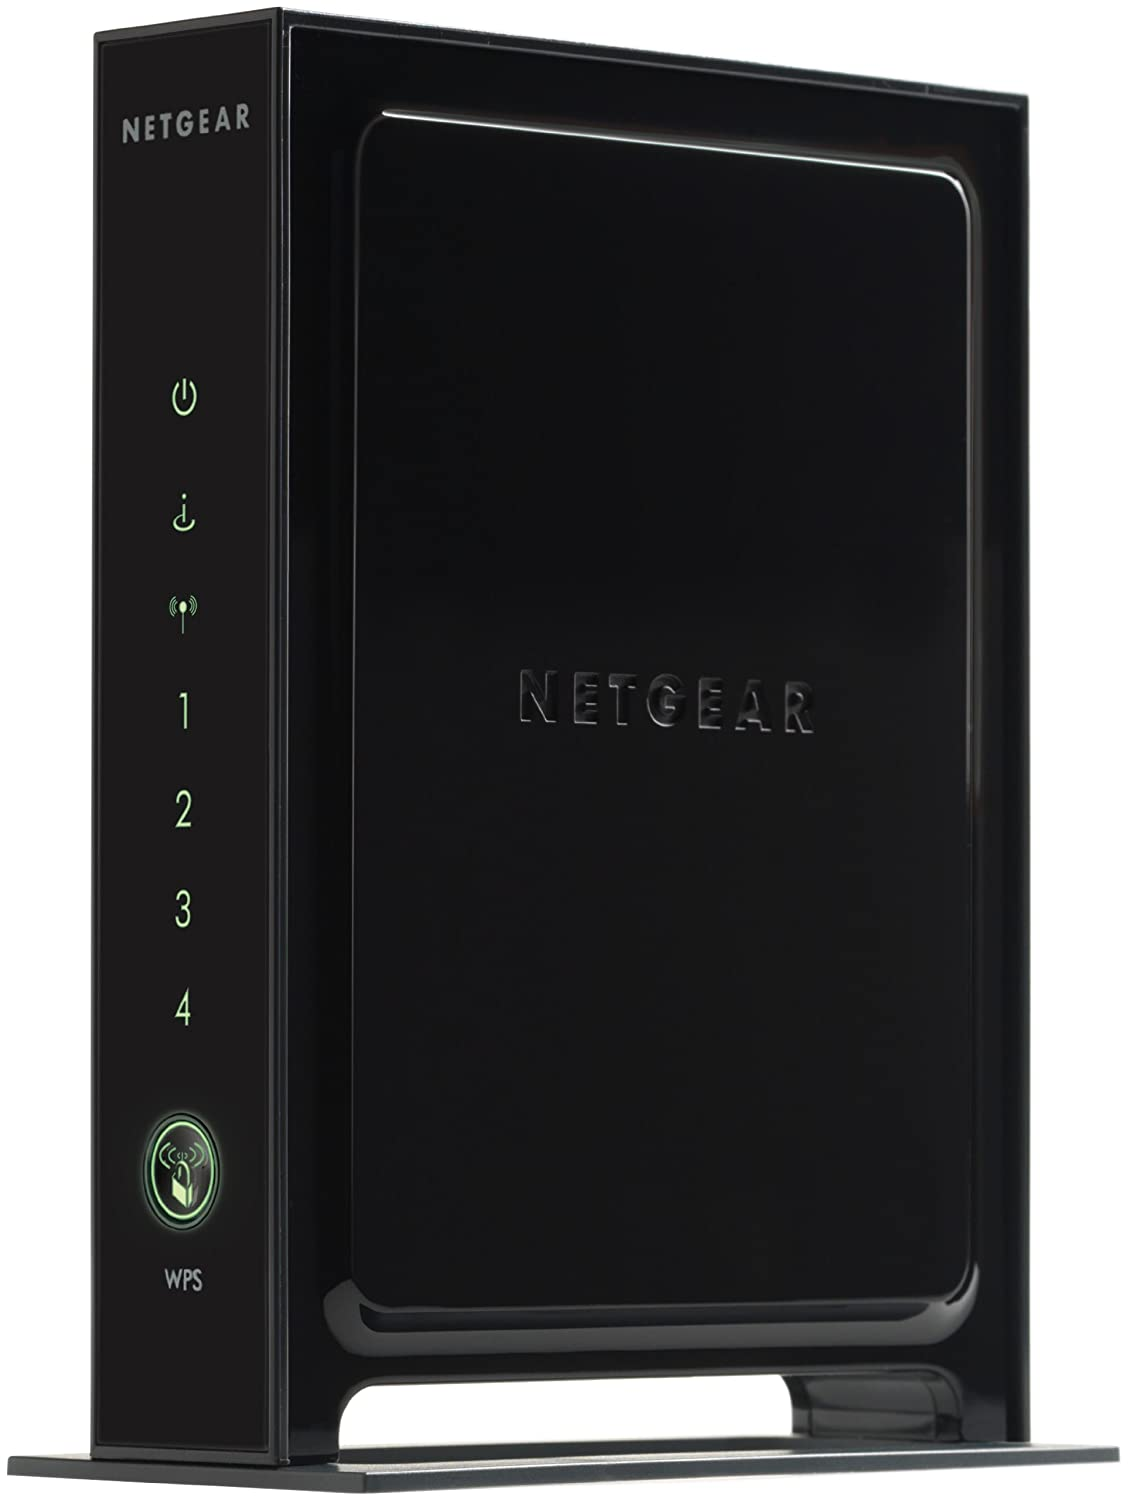 Netgear WLAN Router amazon